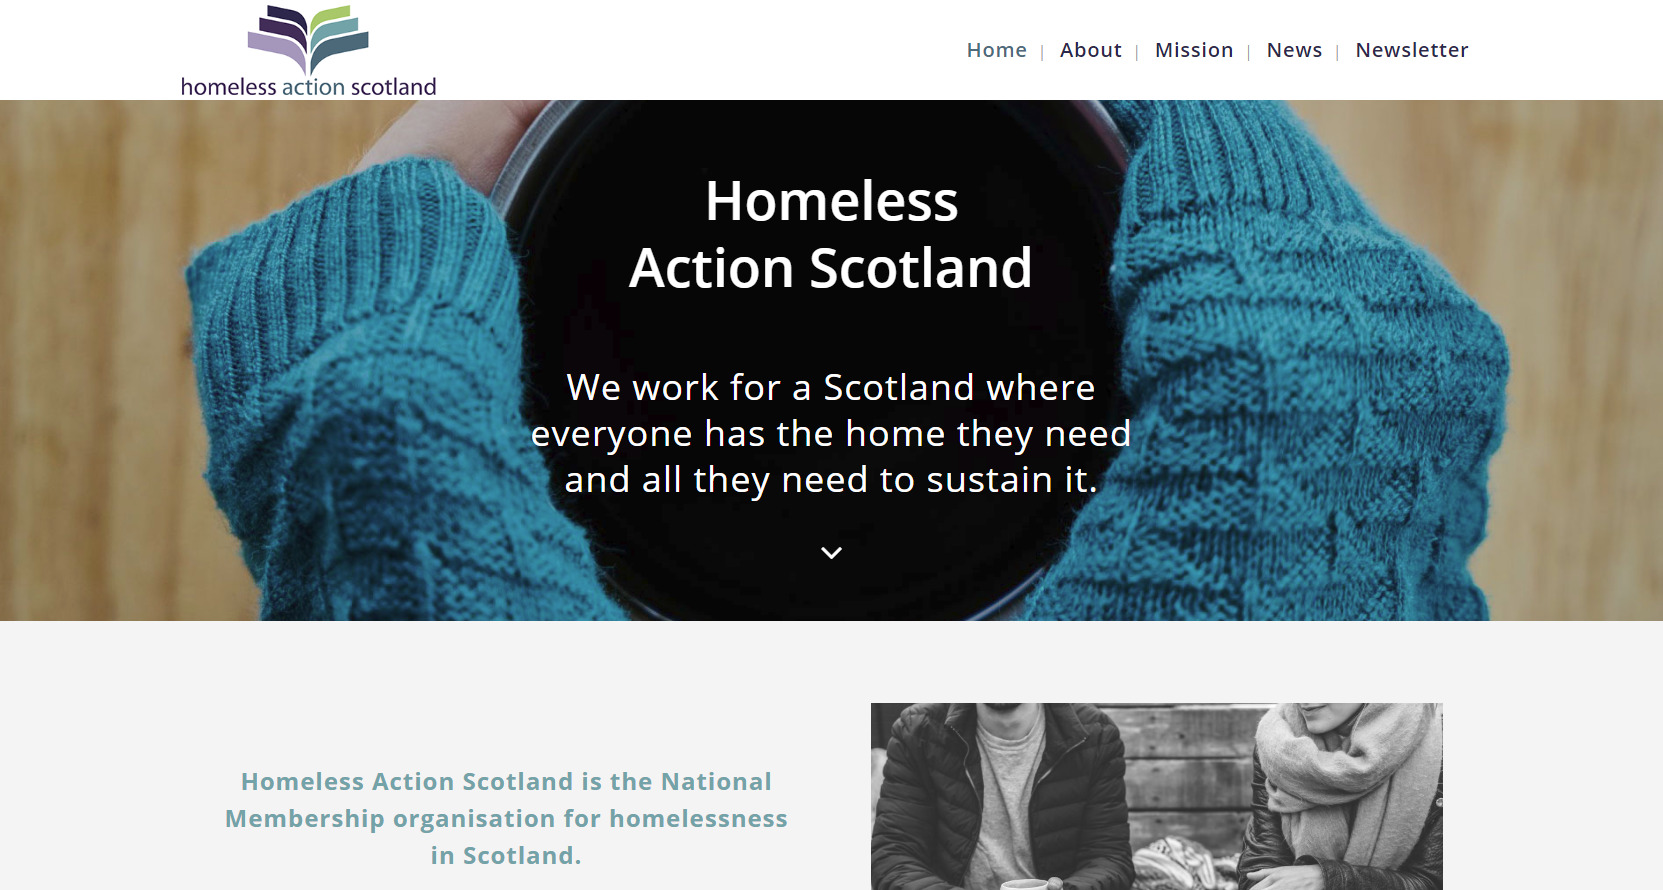 Homepage Homeless Action Scotland